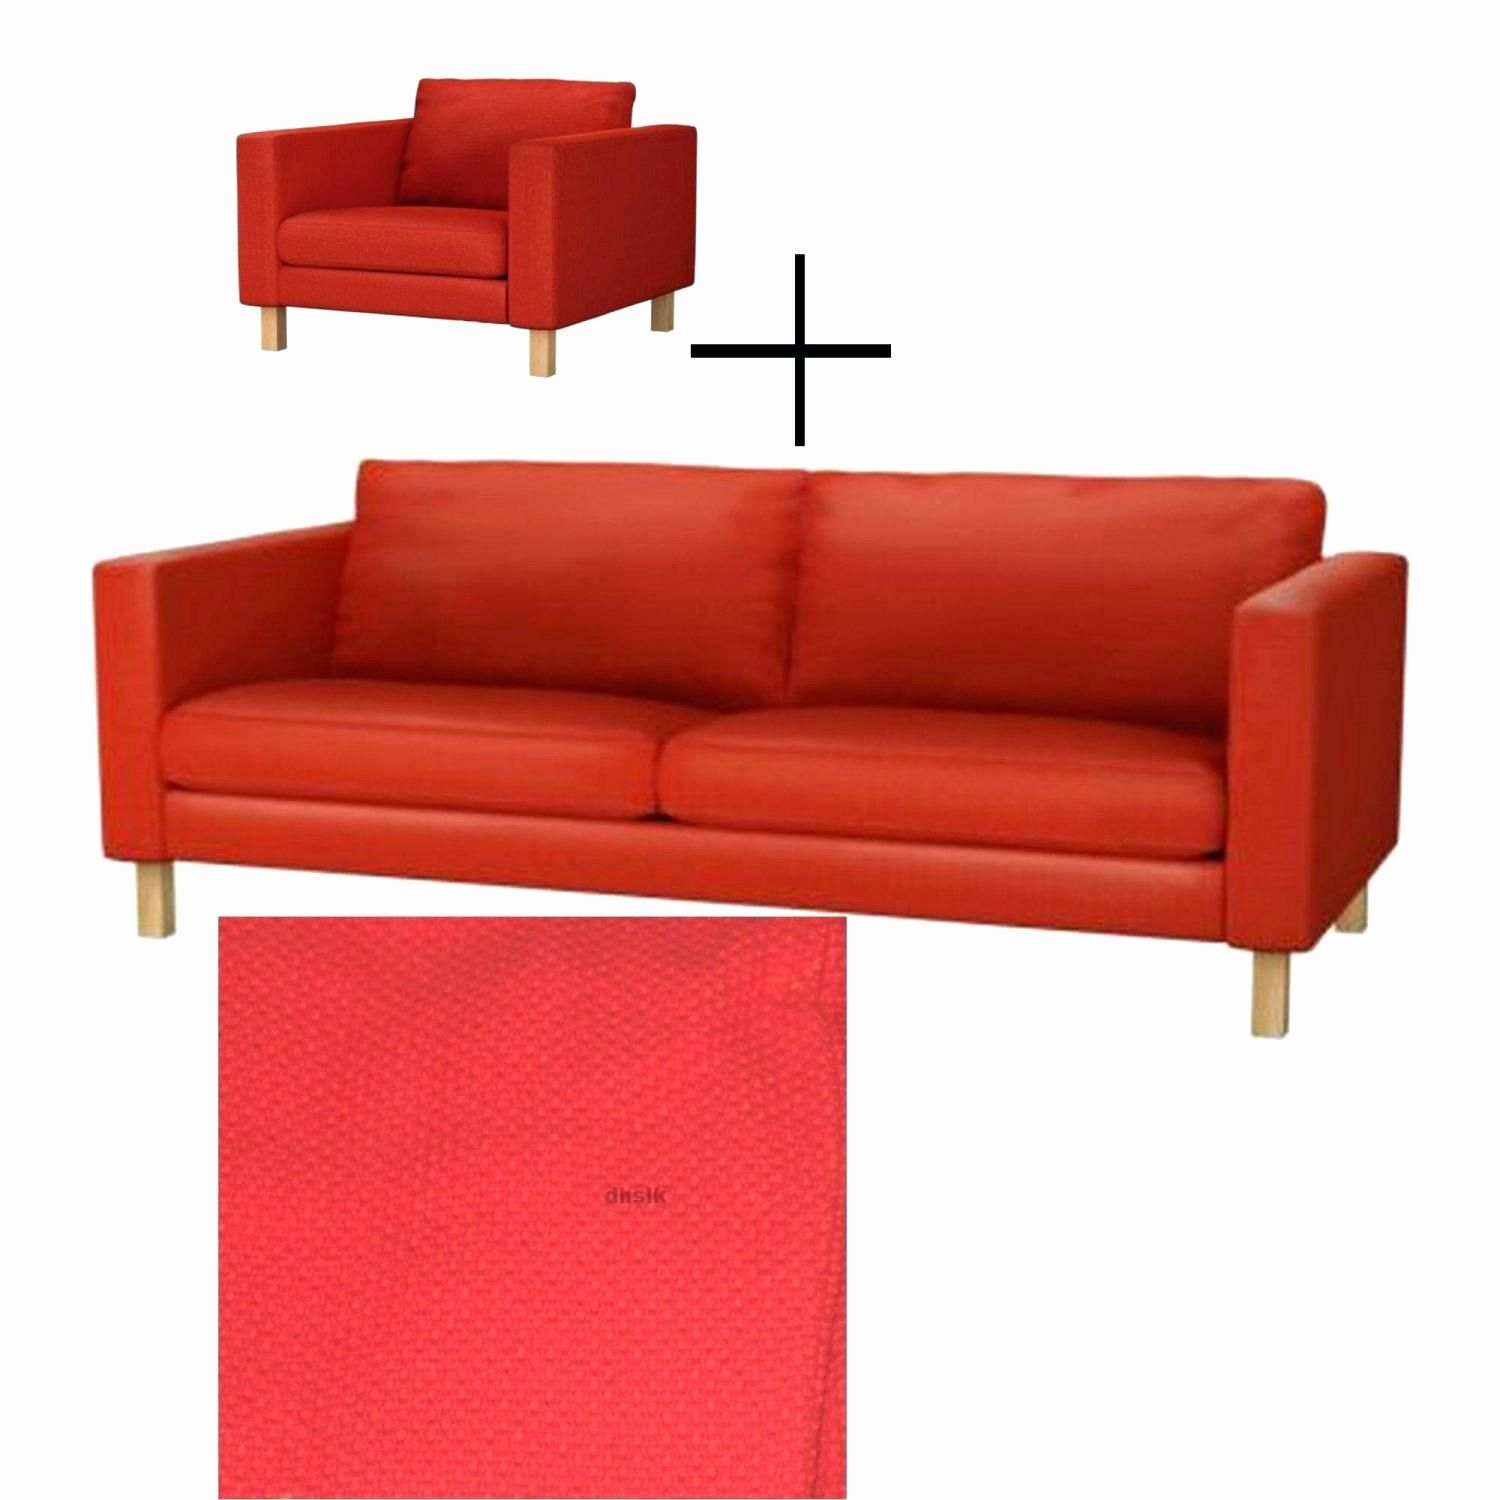 - Luxury Red Sofa Covers Art Red Sofa Covers Unique Ikea Karlstad